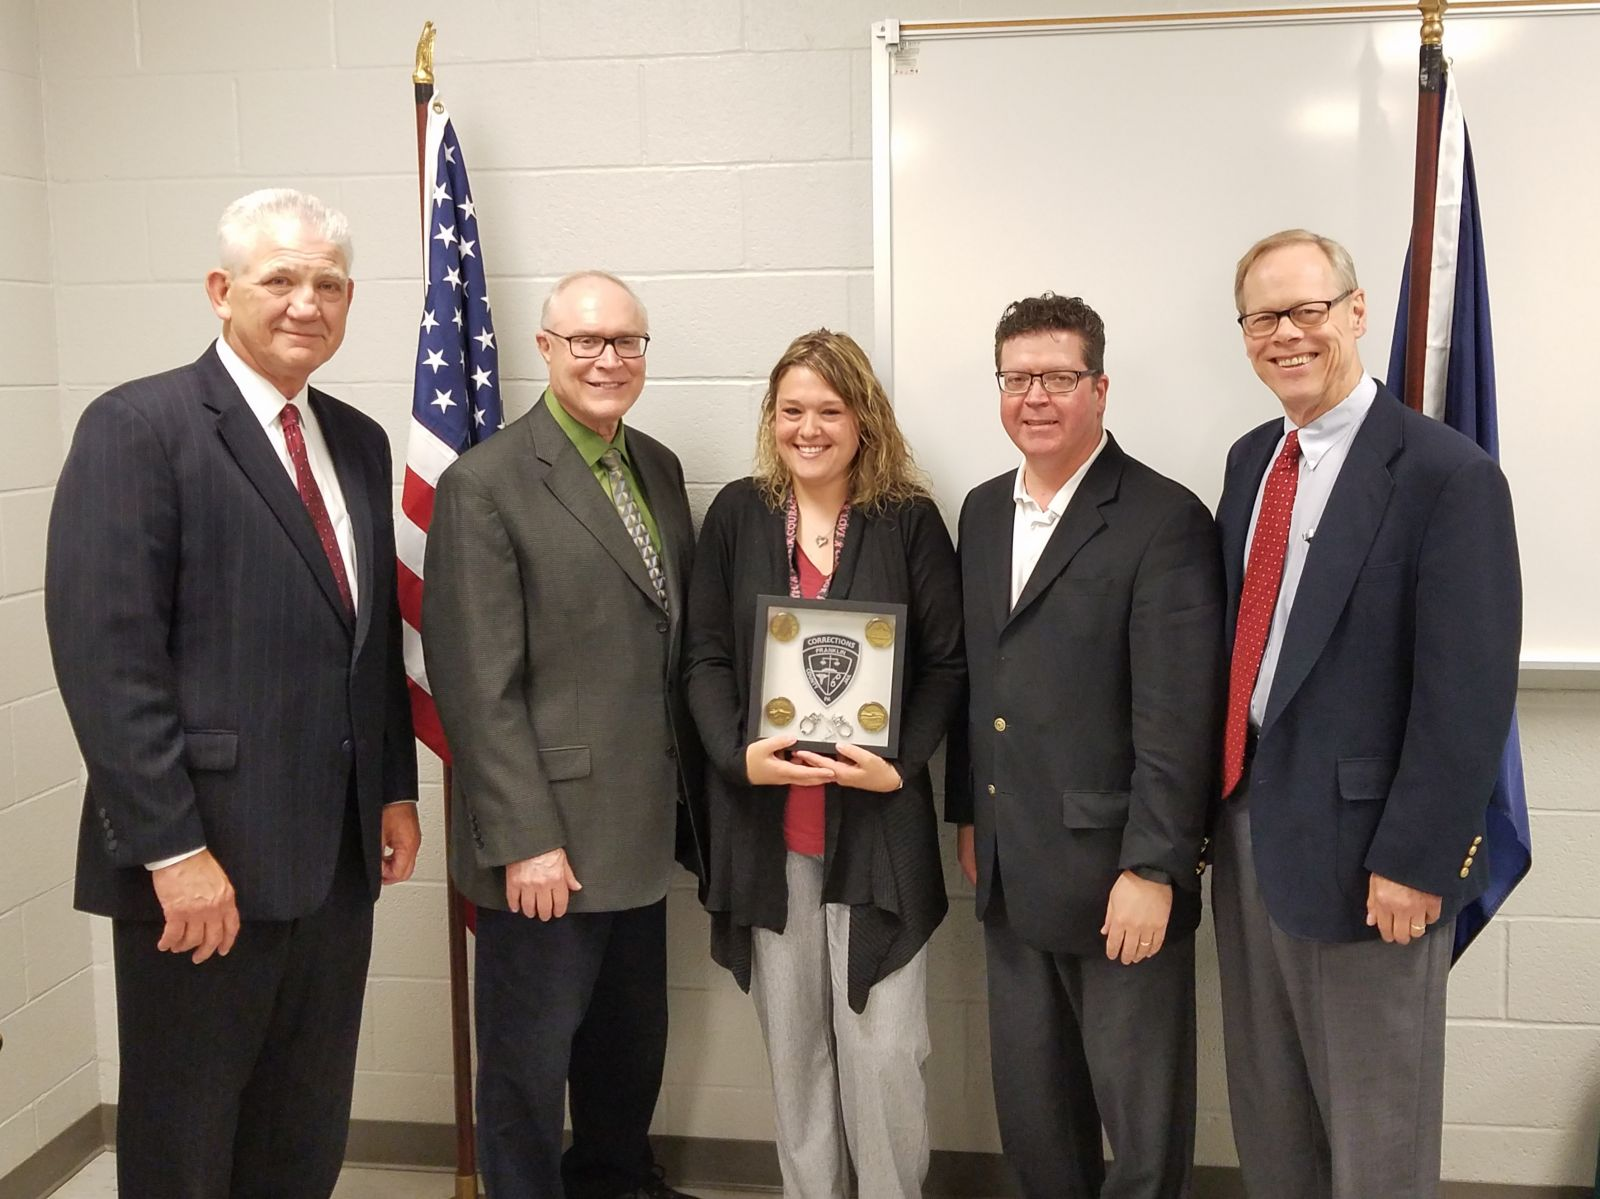 Pictured above, left to right: Former County Administrator John Hart, Commissioner Bob Thomas, Correctional Treatment Specialist and Correctional Worker of the Year Heather Franzoni, Commissioner Chairman Dave Keller, Commissioner Bob Ziobrowski